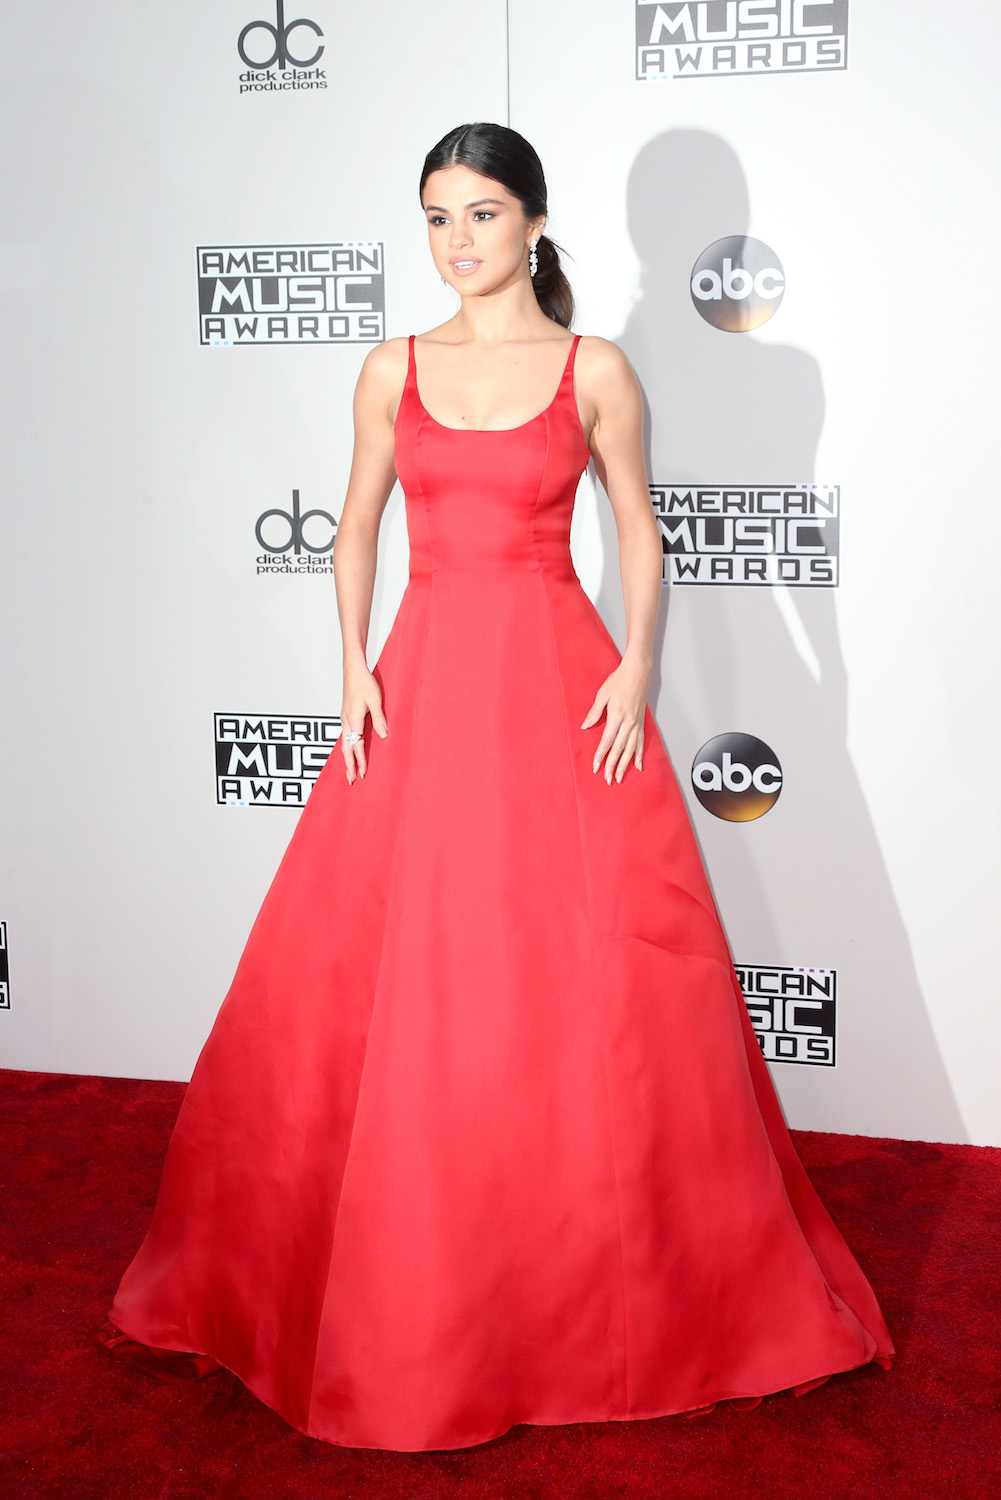 Selena Gomez attends the 2016 American Music Awards